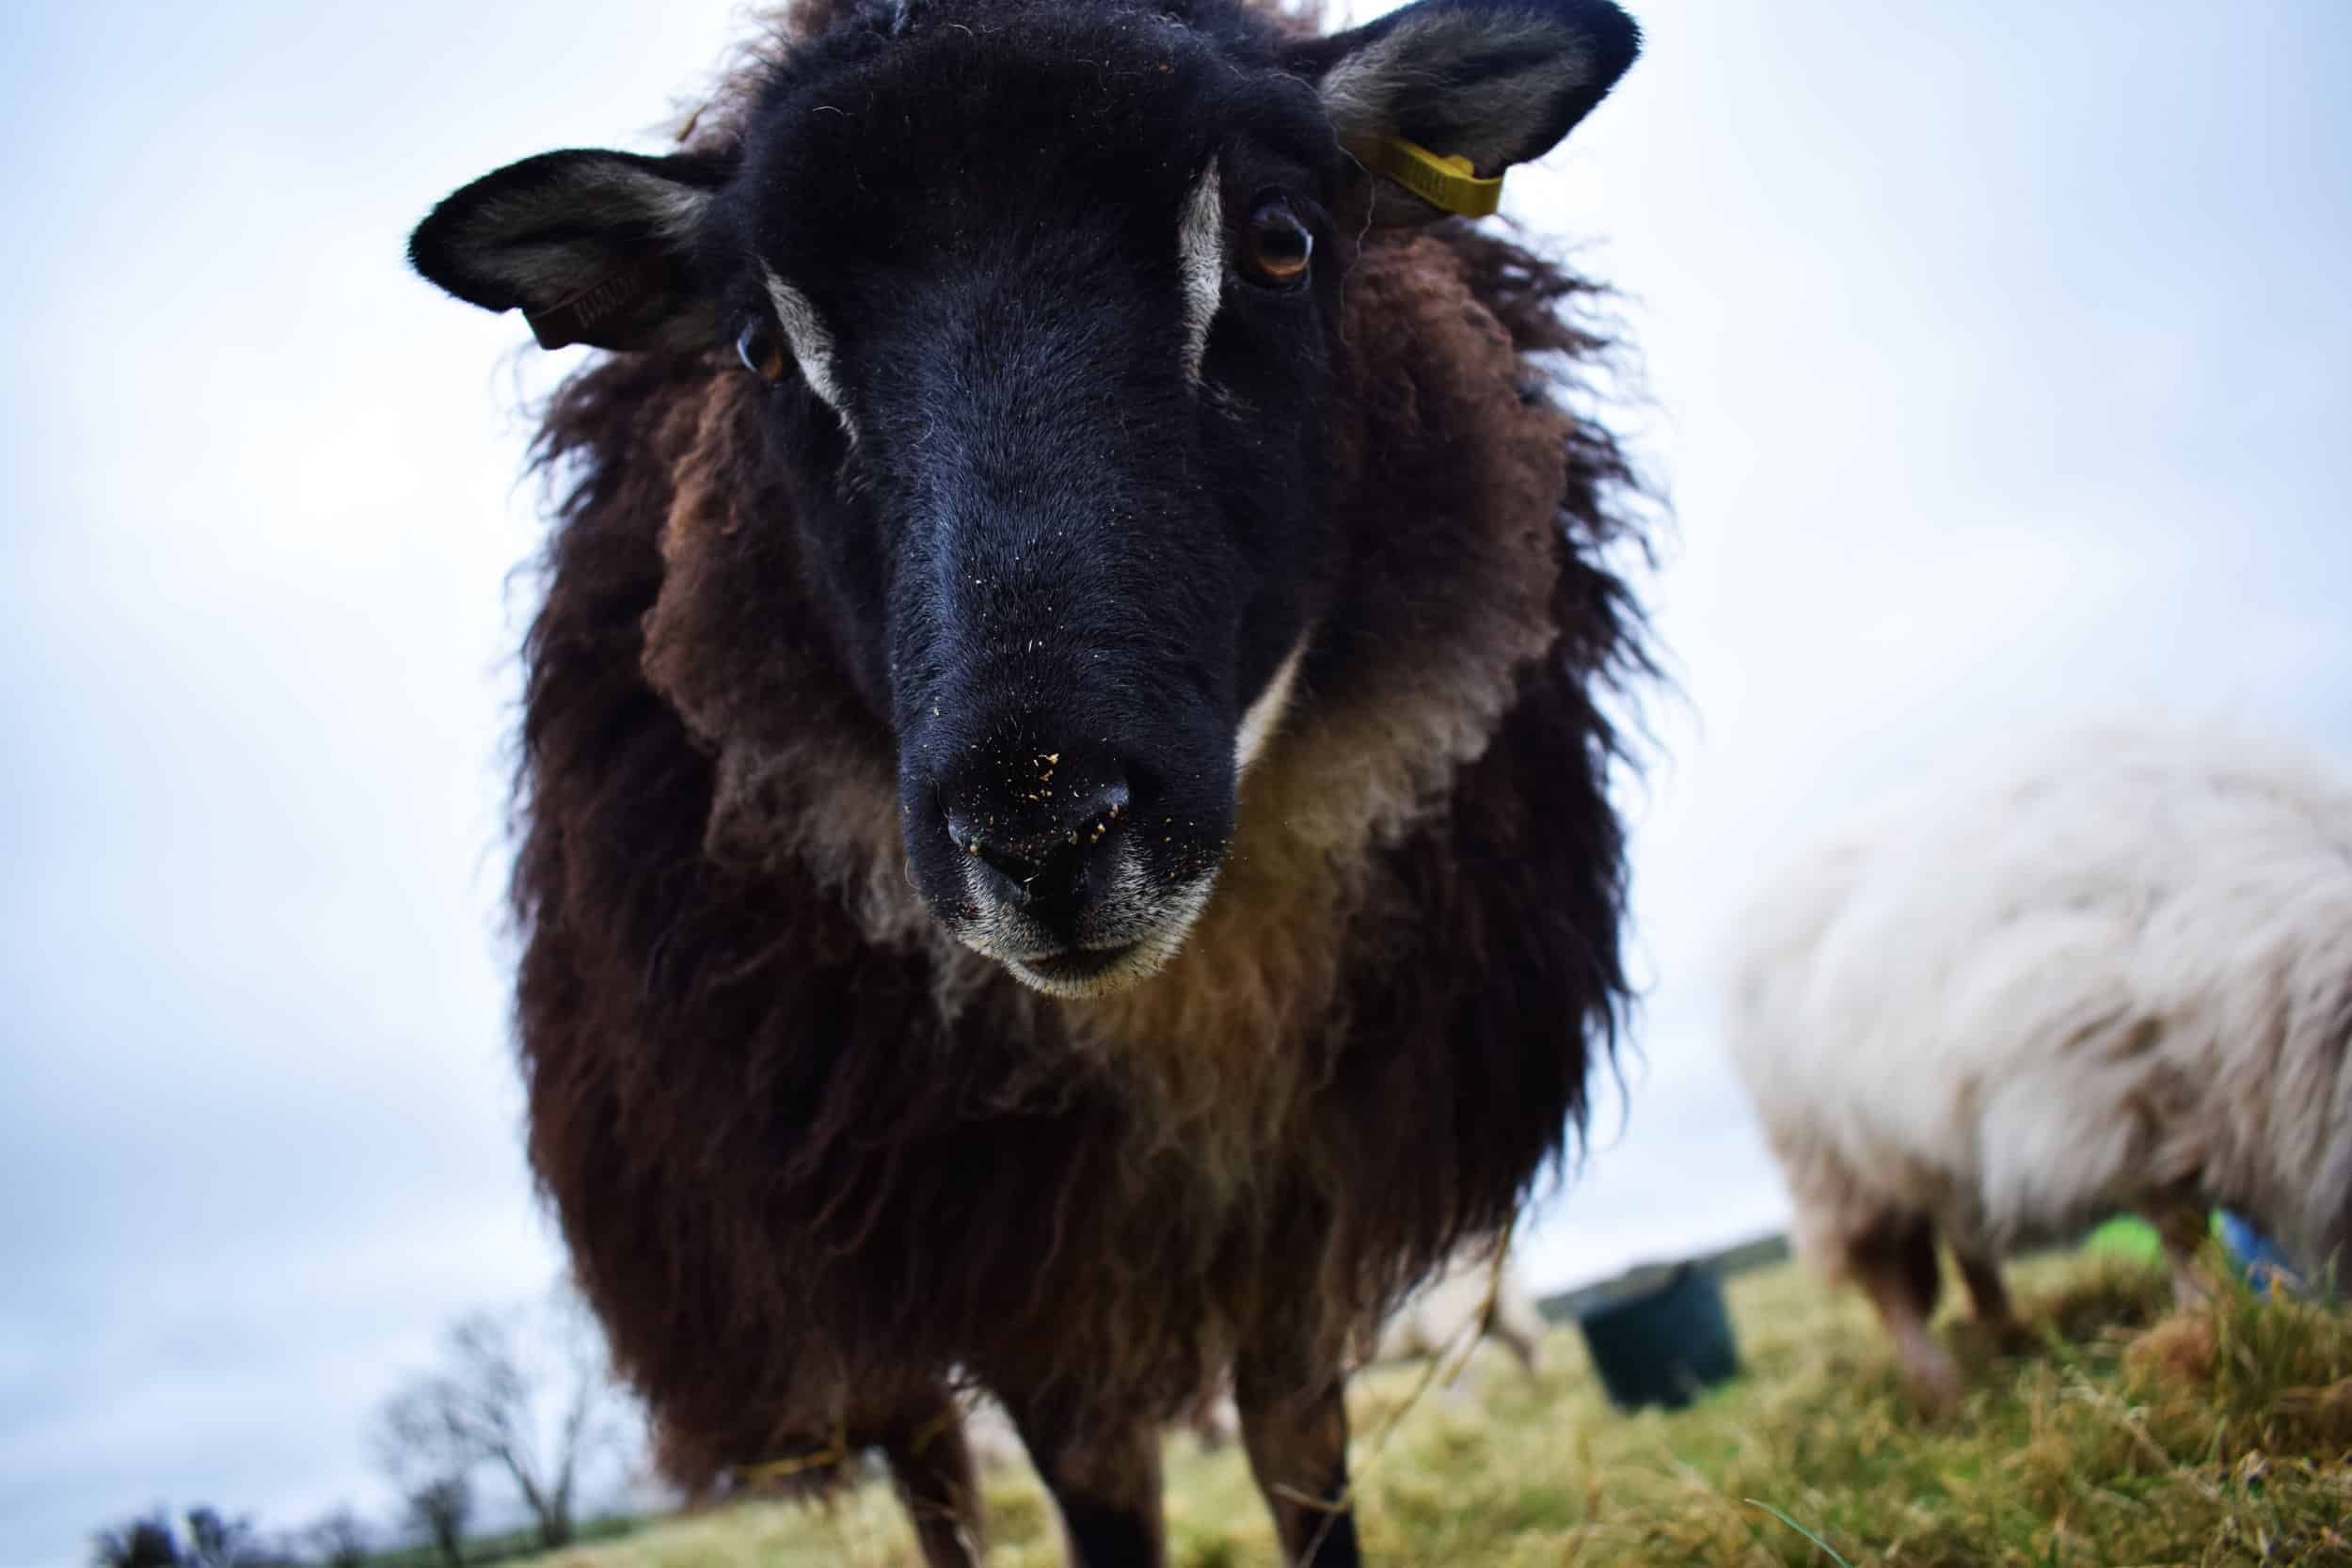 Pepsi mouflon black icelandic cross sheep